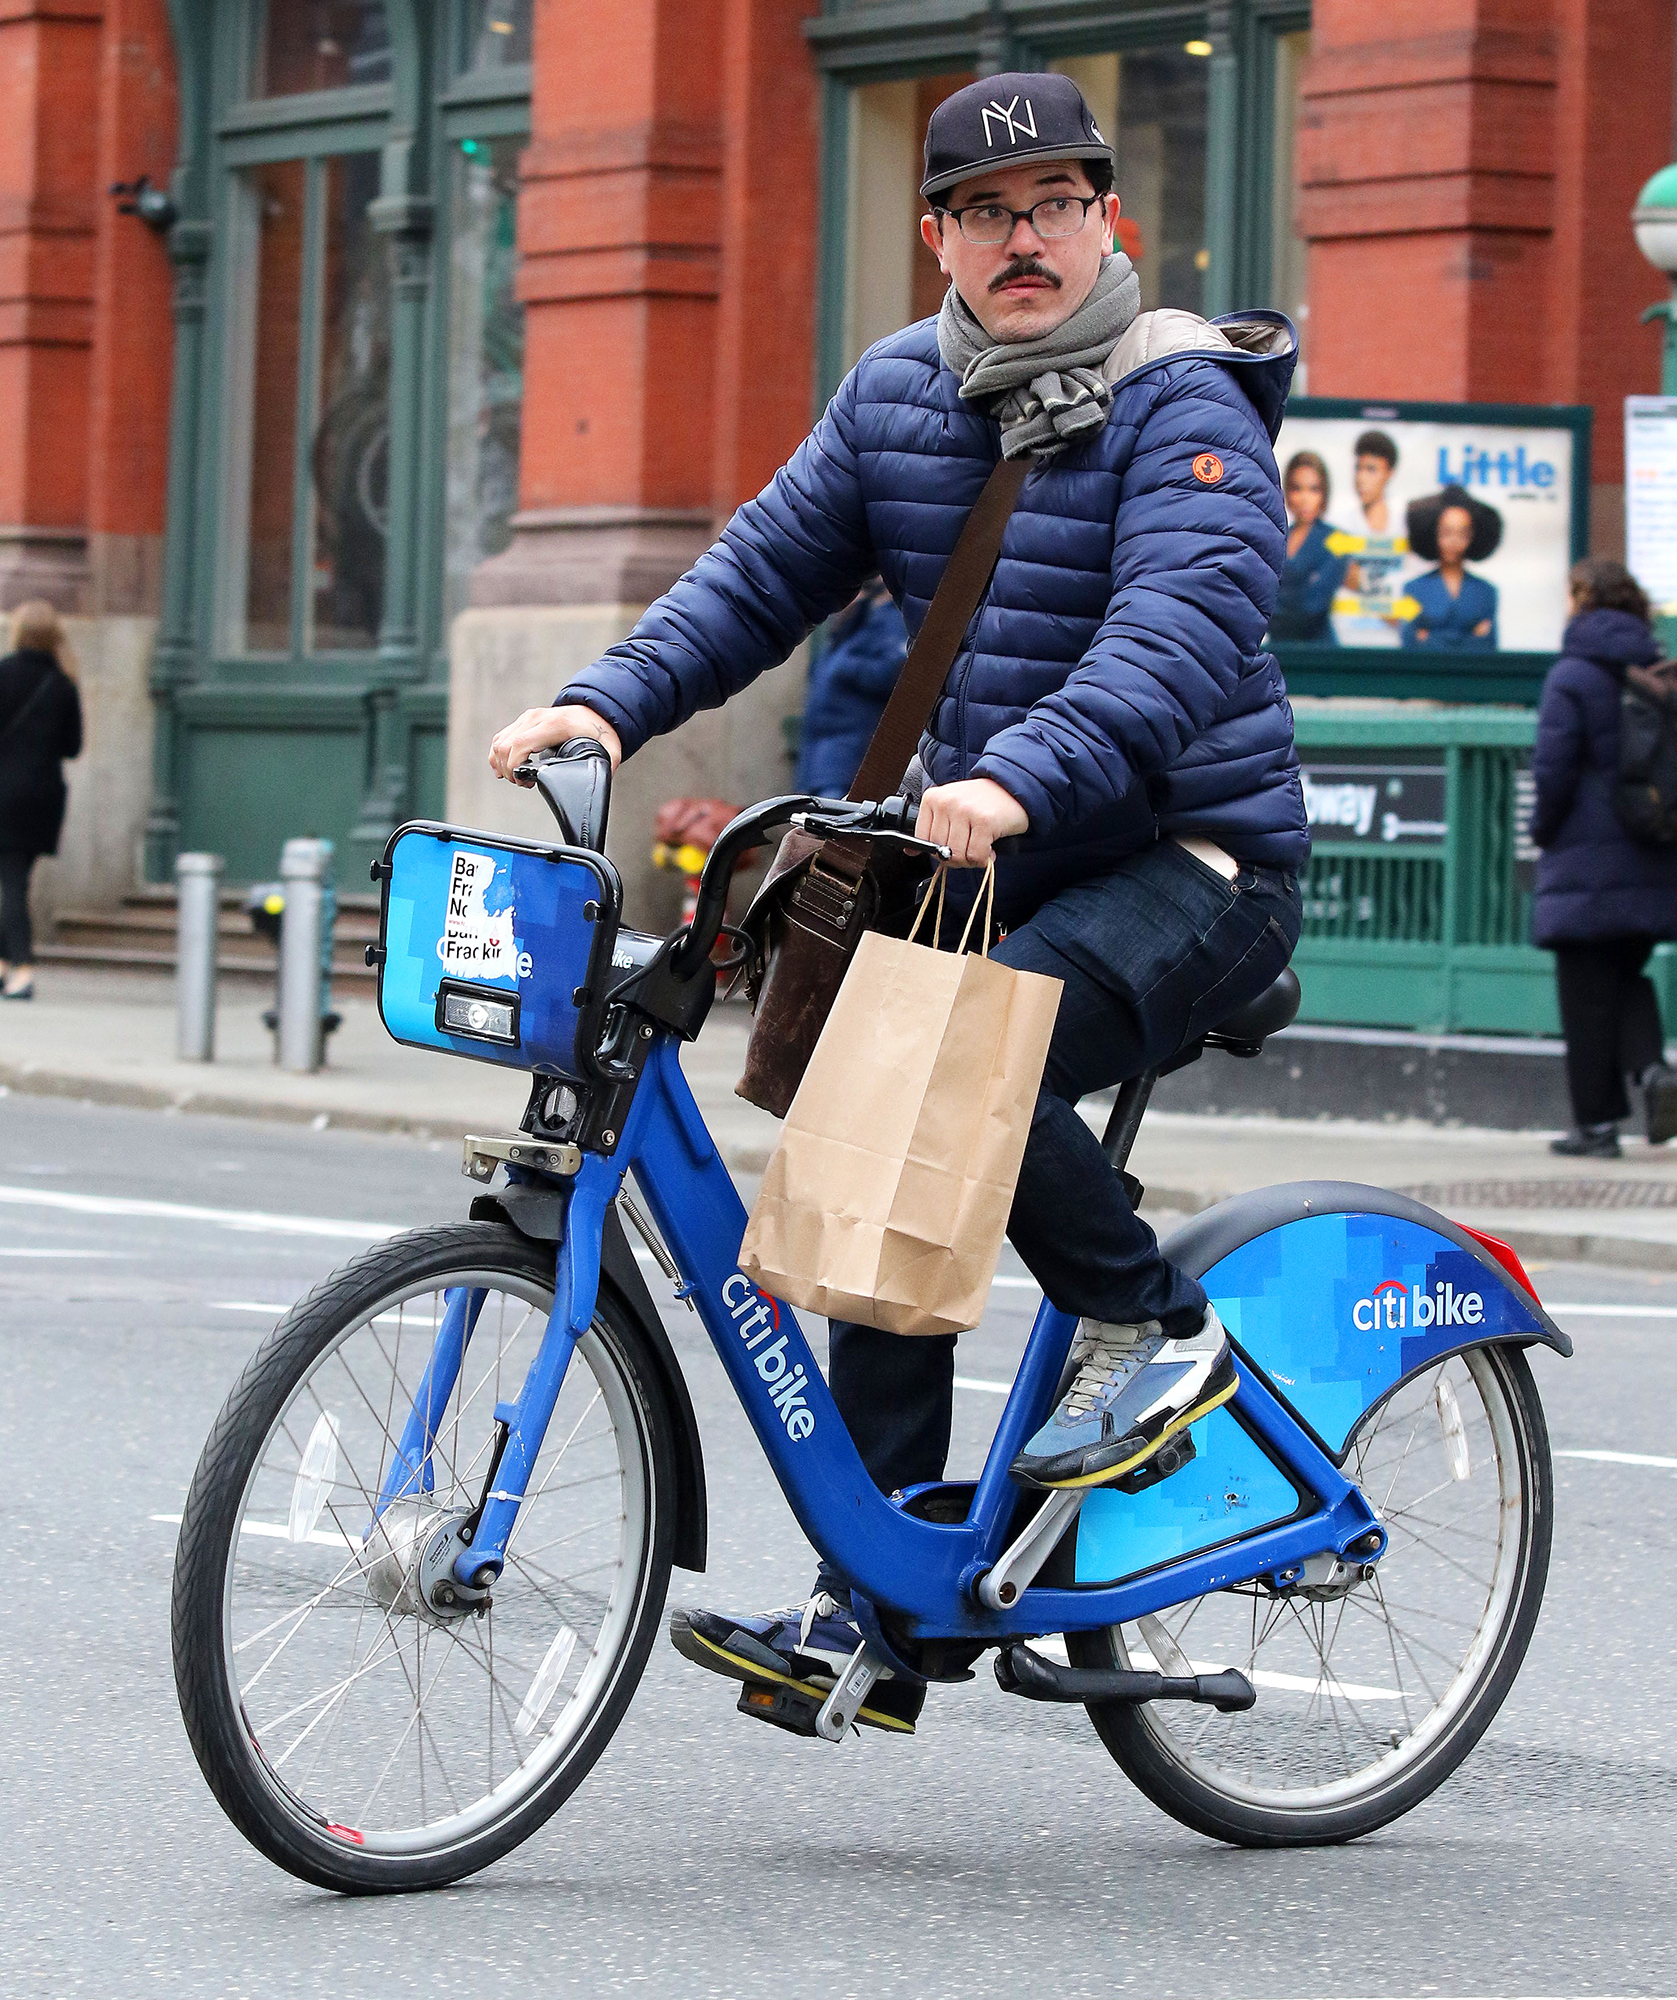 John Leguizamo Bike - The When They See Us actor went incognito on a Citi Bike in Manhattan's SoHo neighborhood on April 2, 2019.